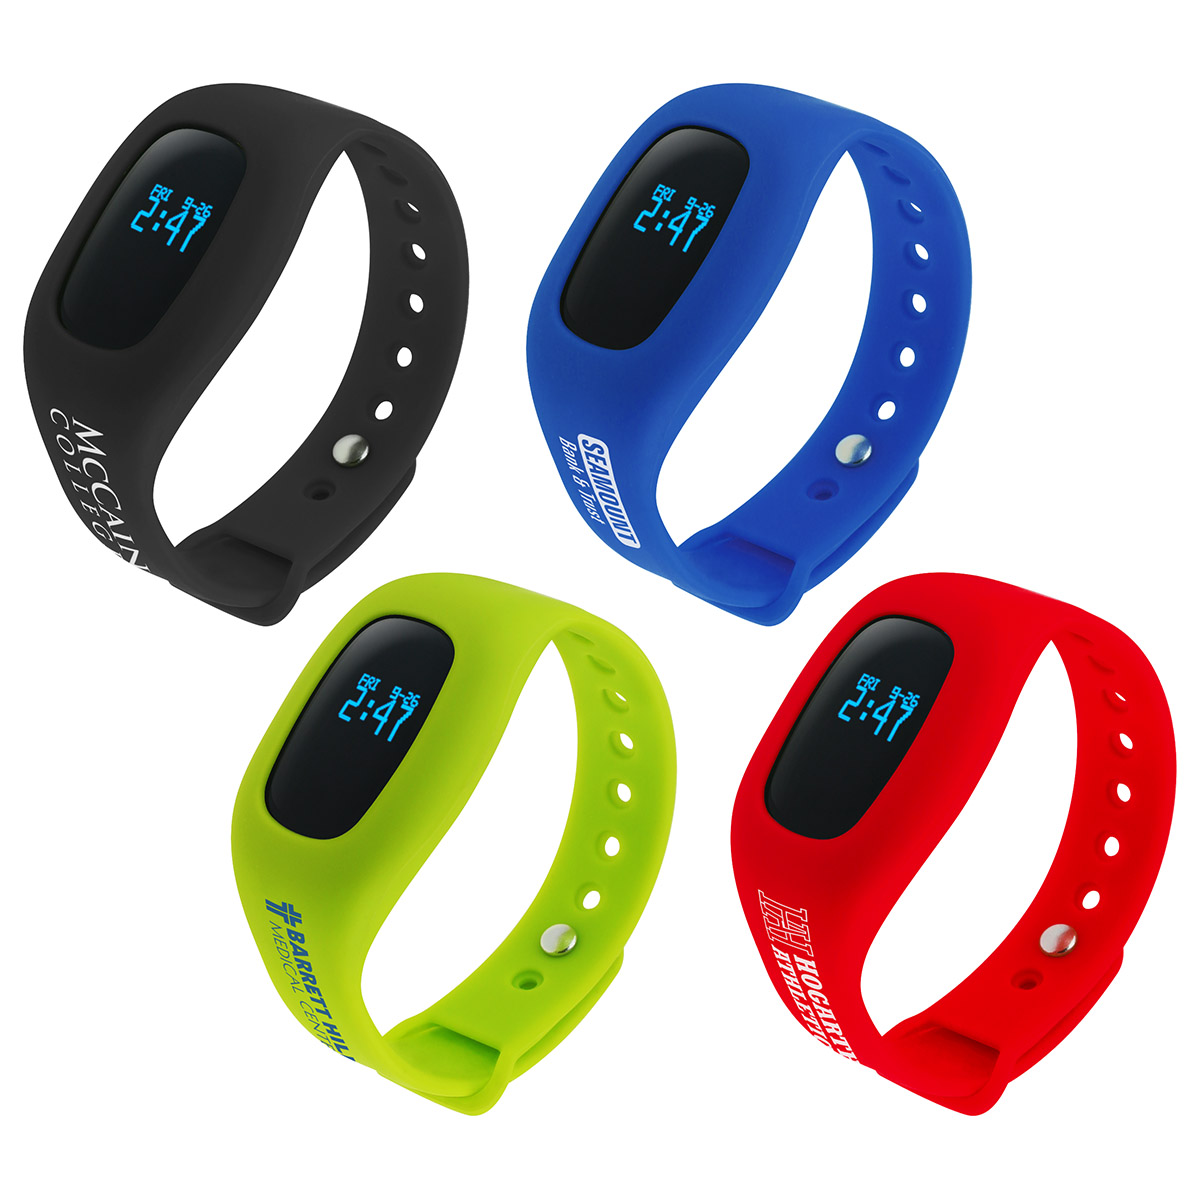 Smart Wear Wireless Tracker Pedometer, WHF-SW16 - 1 Colour Imprint